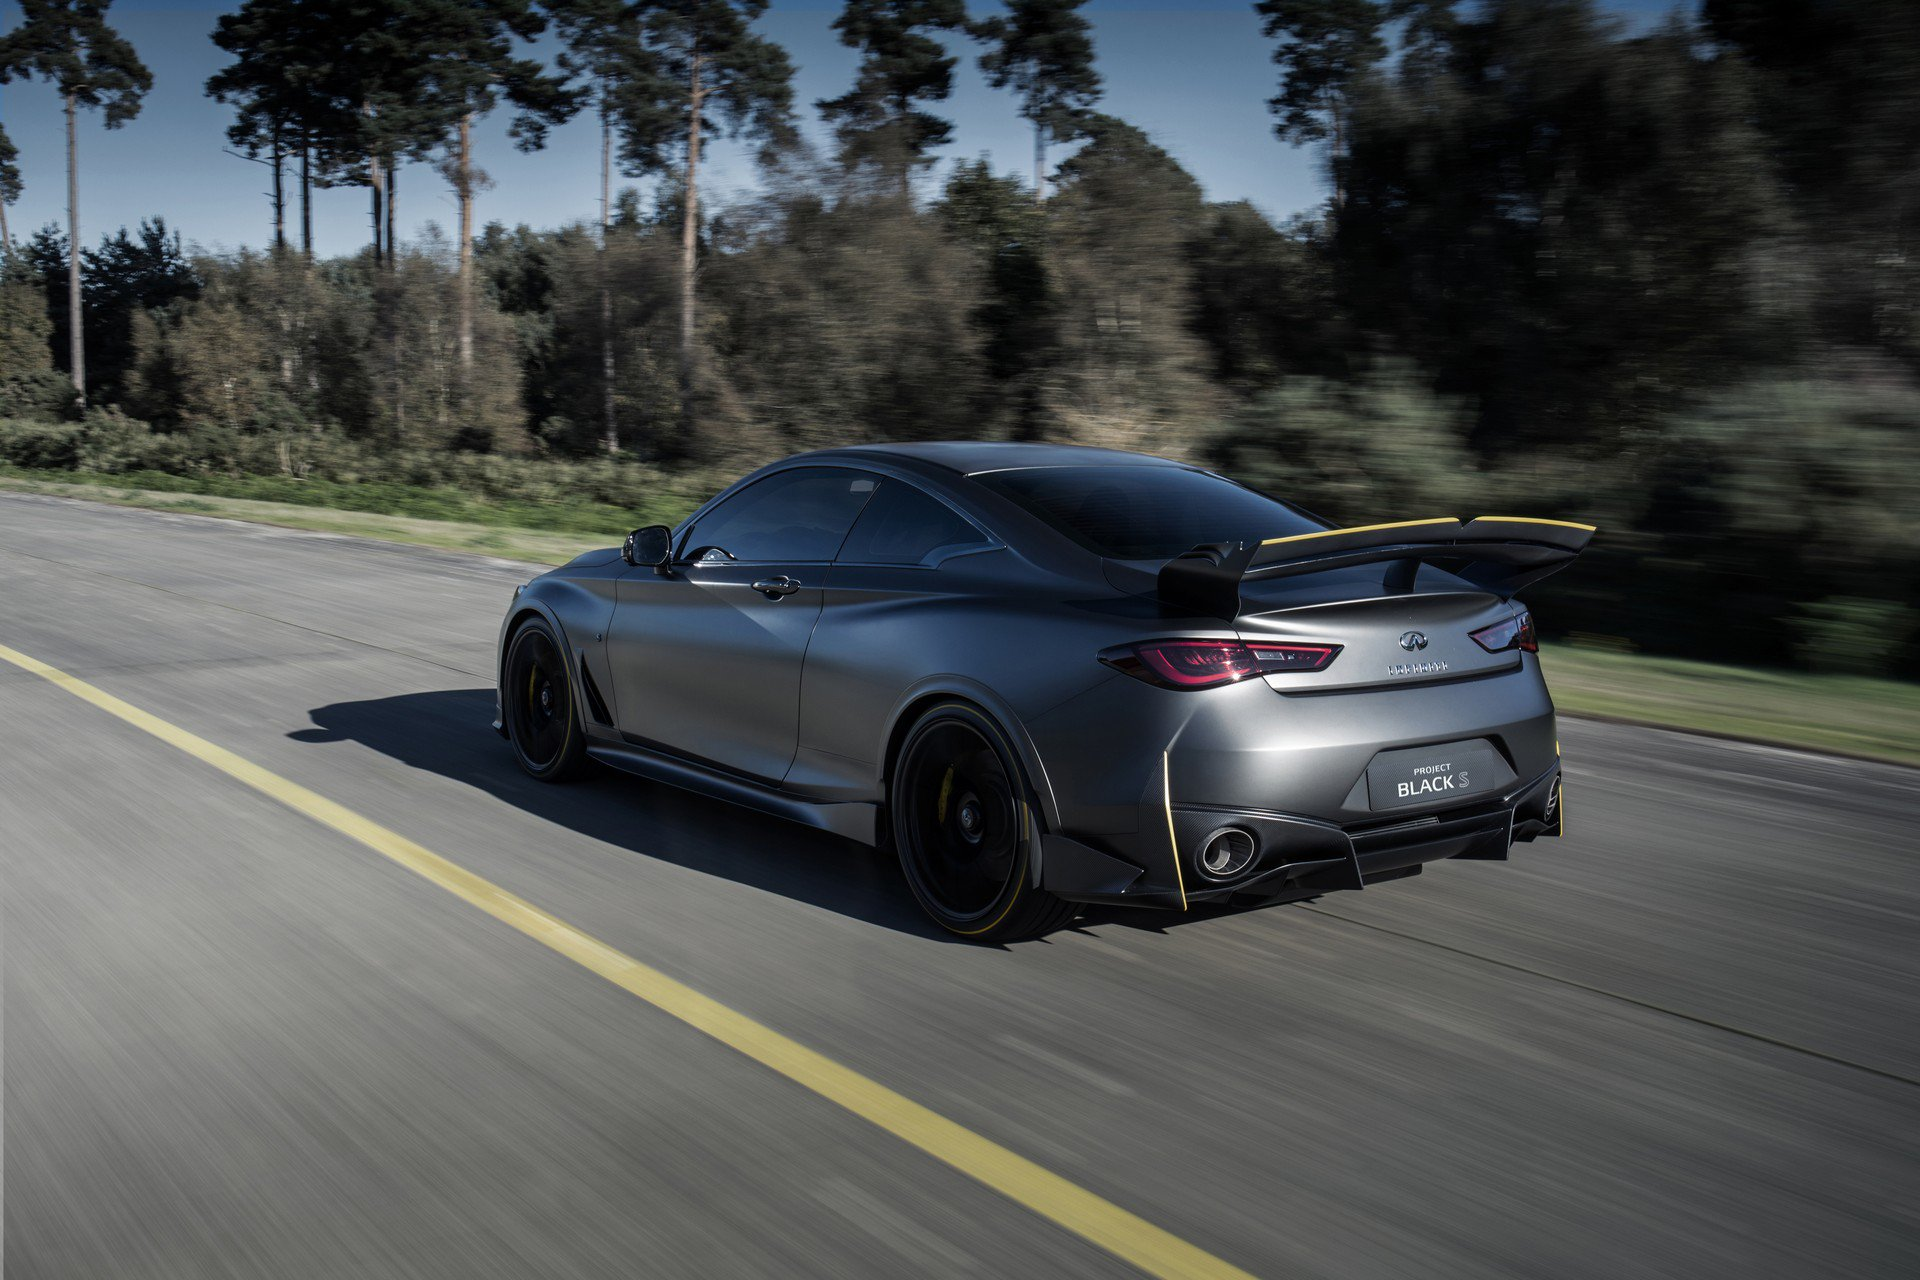 Infiniti Project Black S Prototype (39)